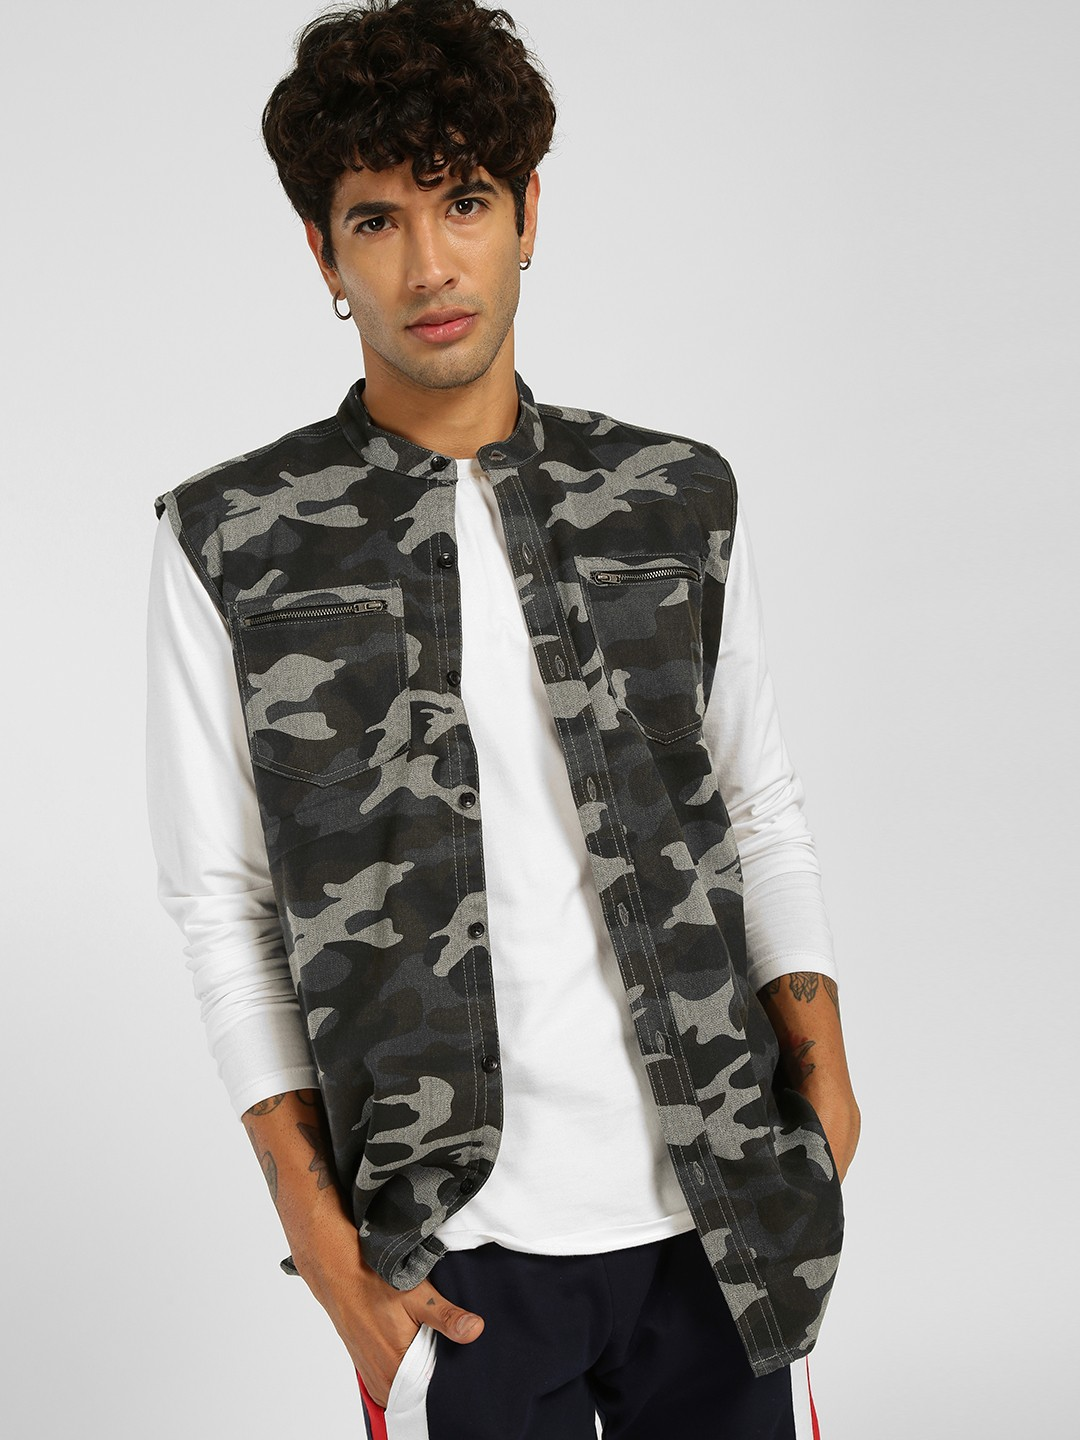 SKULT By Shahid Kapoor Multi Sleeveless Camo Print Jacket 1